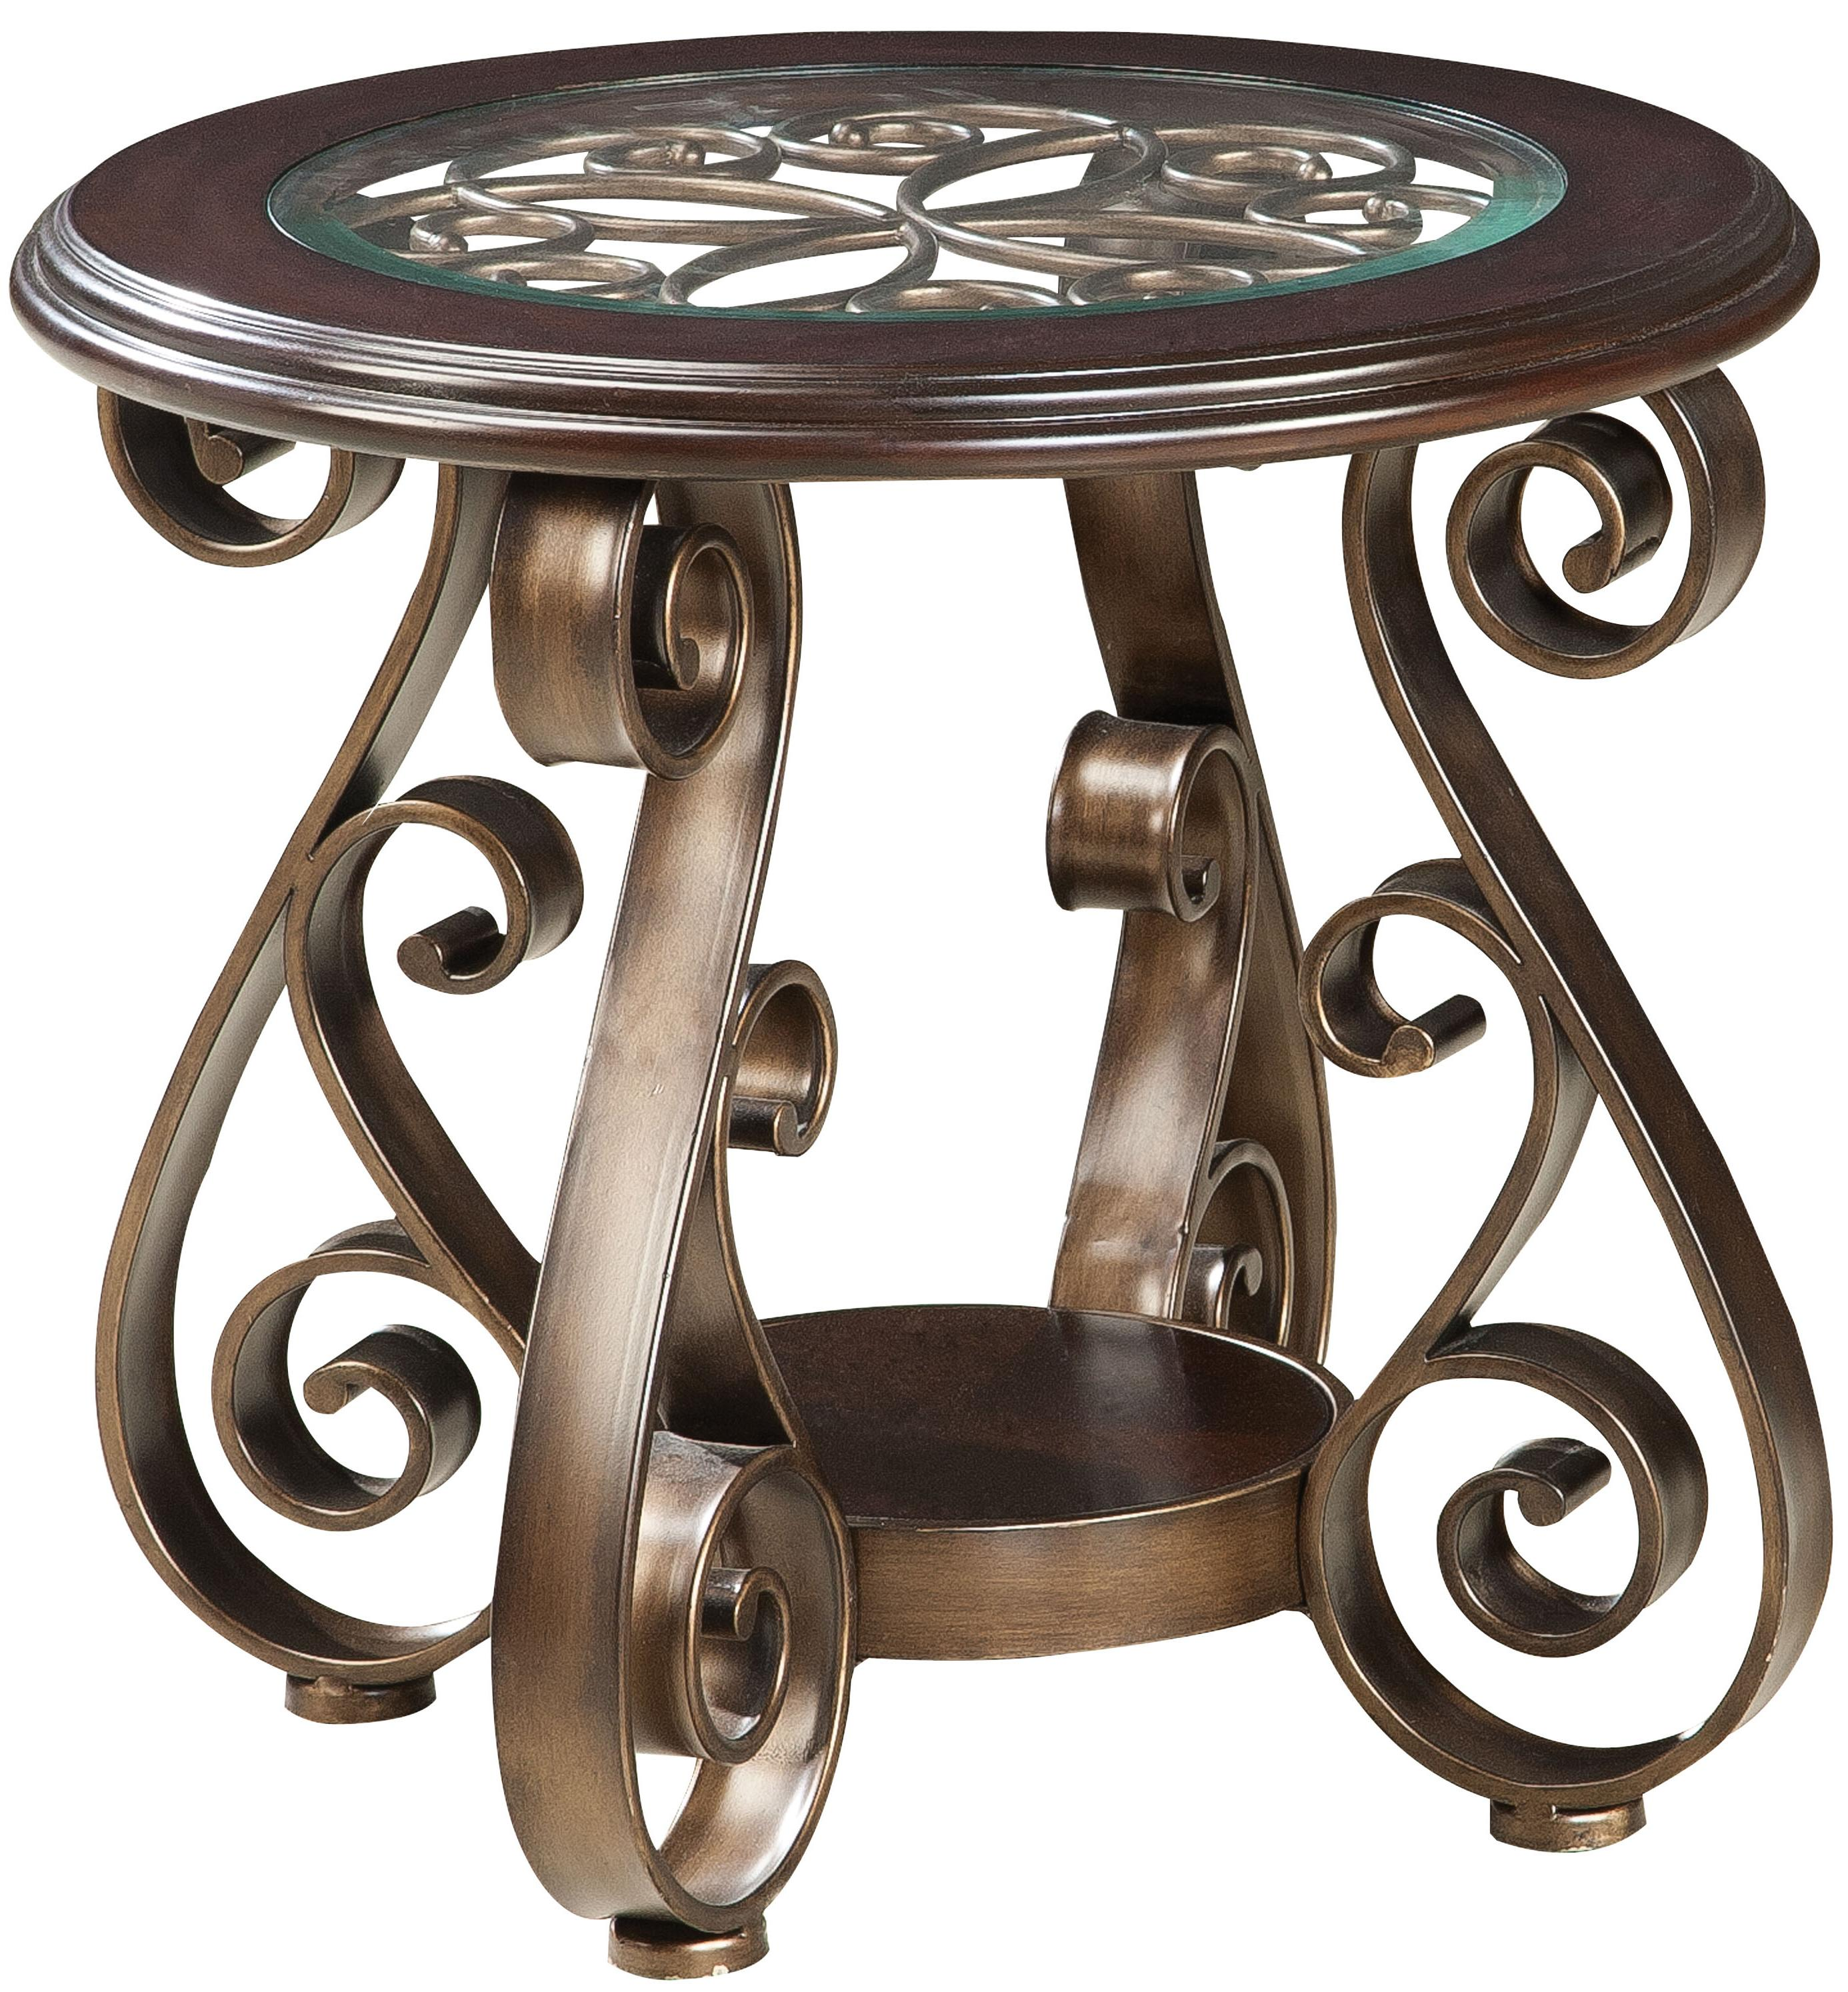 Old World End Table with Glass Top and S Scroll Legs by Standard